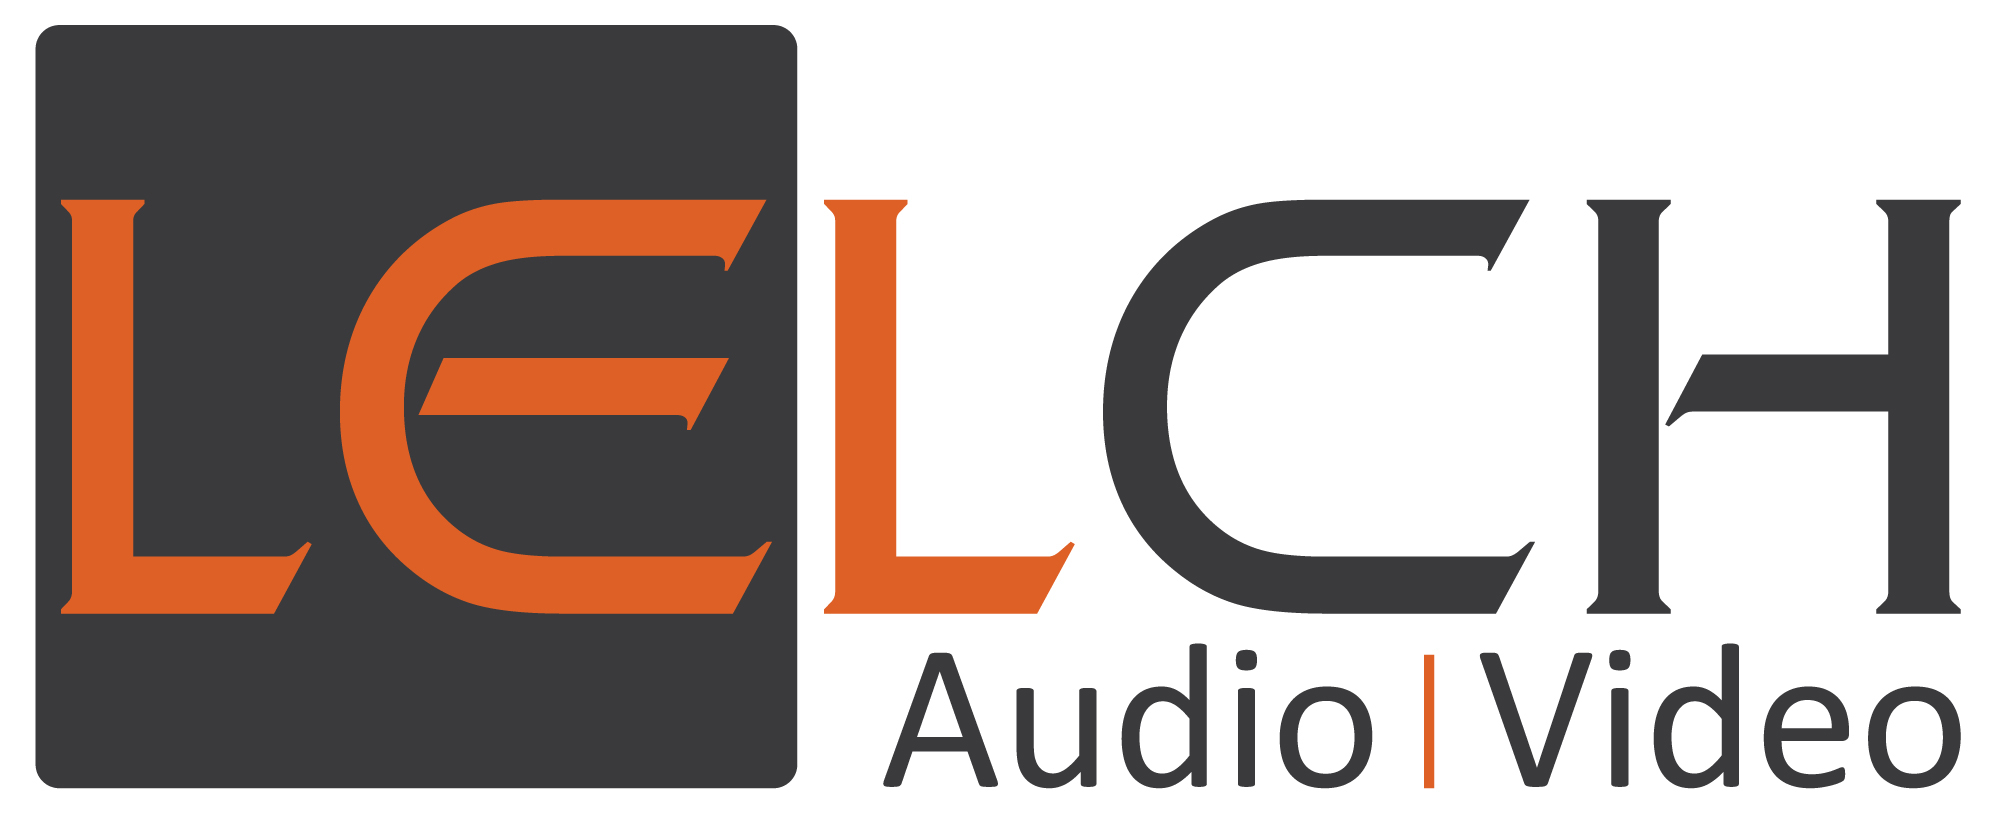 Lelch Audio Video St Louis Park Mn Wire And Cable